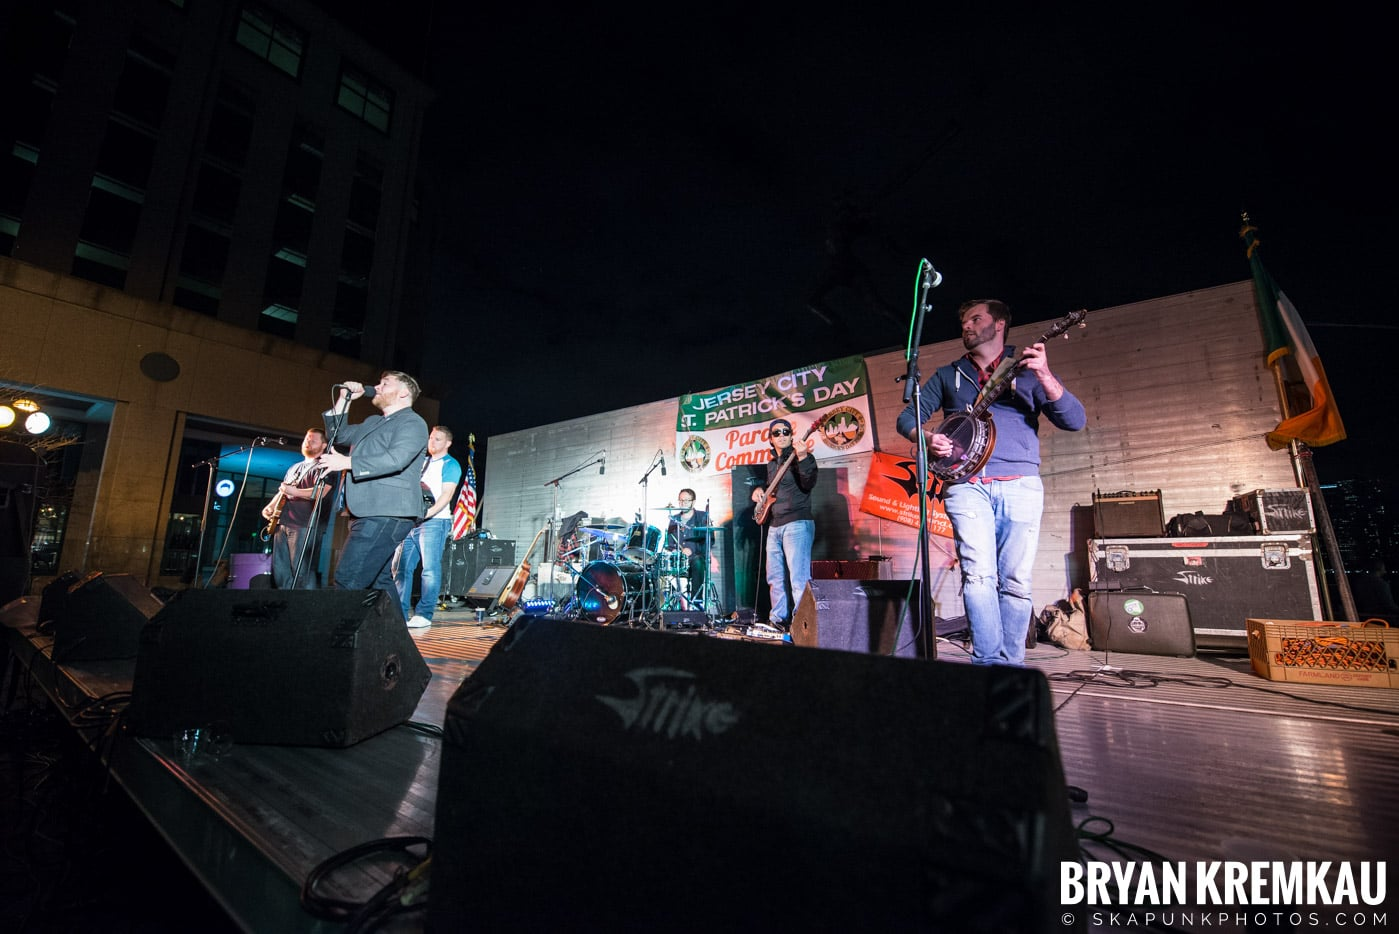 The Narrowbacks @ Jersey City Irish Festival, Jersey City, NJ - 9.30.17 (15)